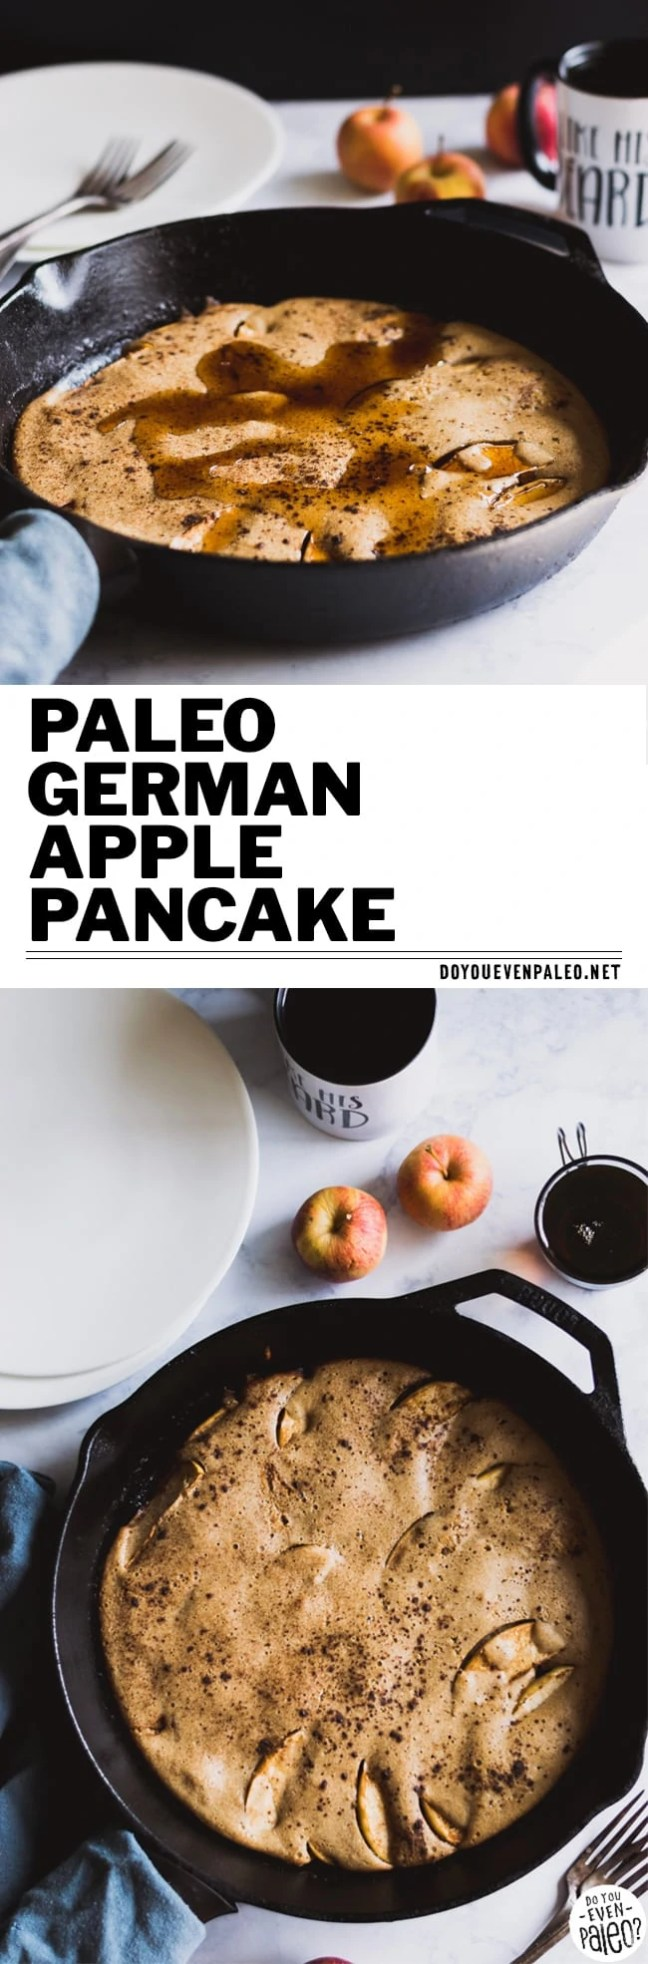 Paleo German Apple Pancake - don't hover over the stove flipping pancakes for breakfast, make one mega pancake instead! It's grain free, gluten free, and nut free. | DoYouEvenPaleo.net